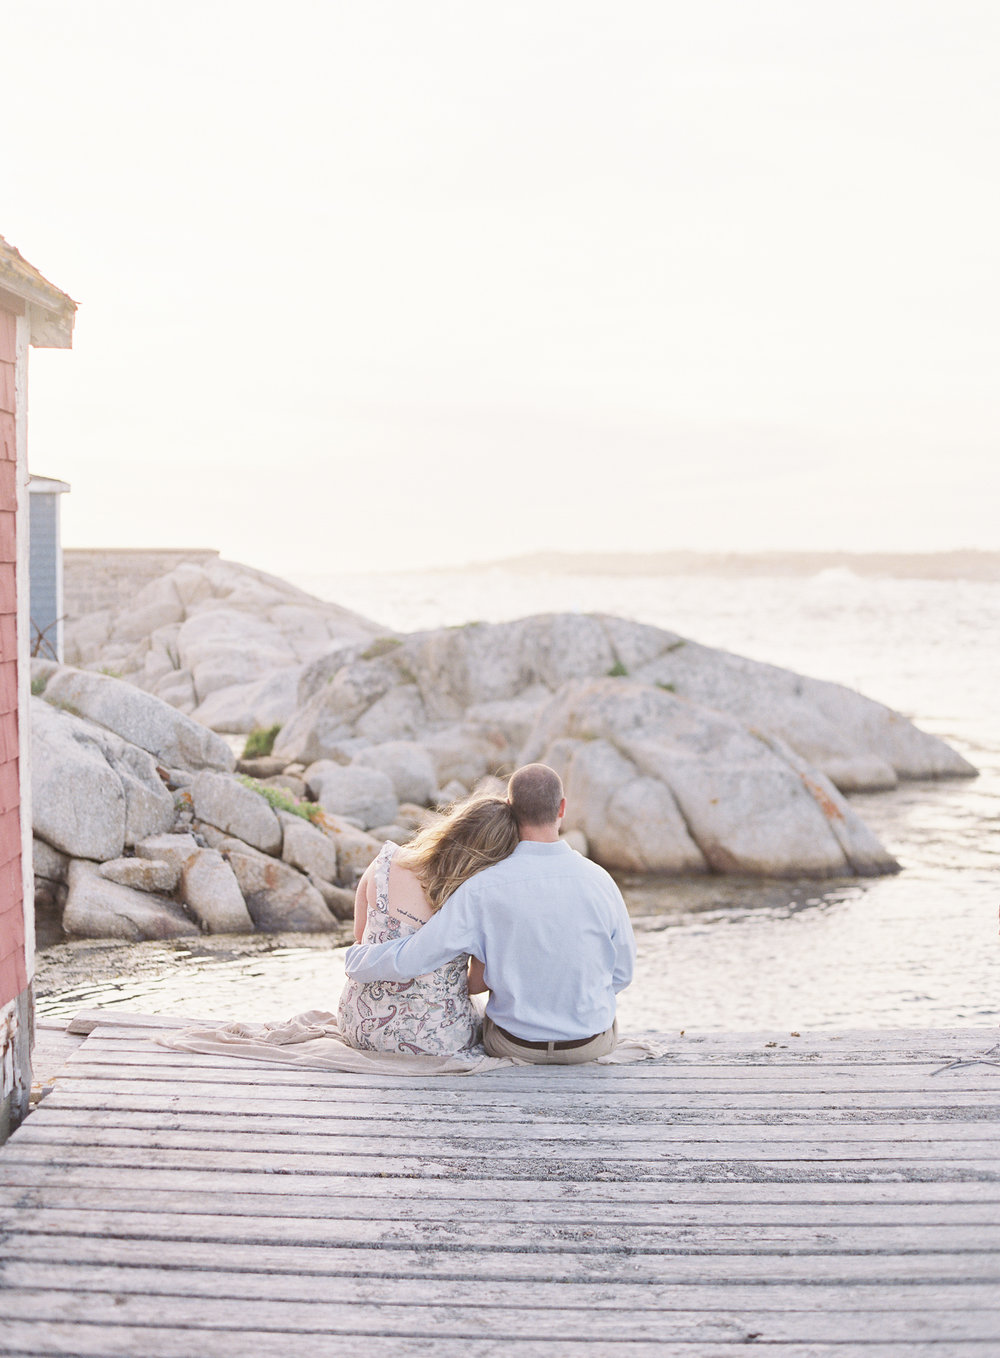 Jacqueline Anne Photography - Alex and Andrew Engagement at Peggy's Cove - Halifax-138.jpg